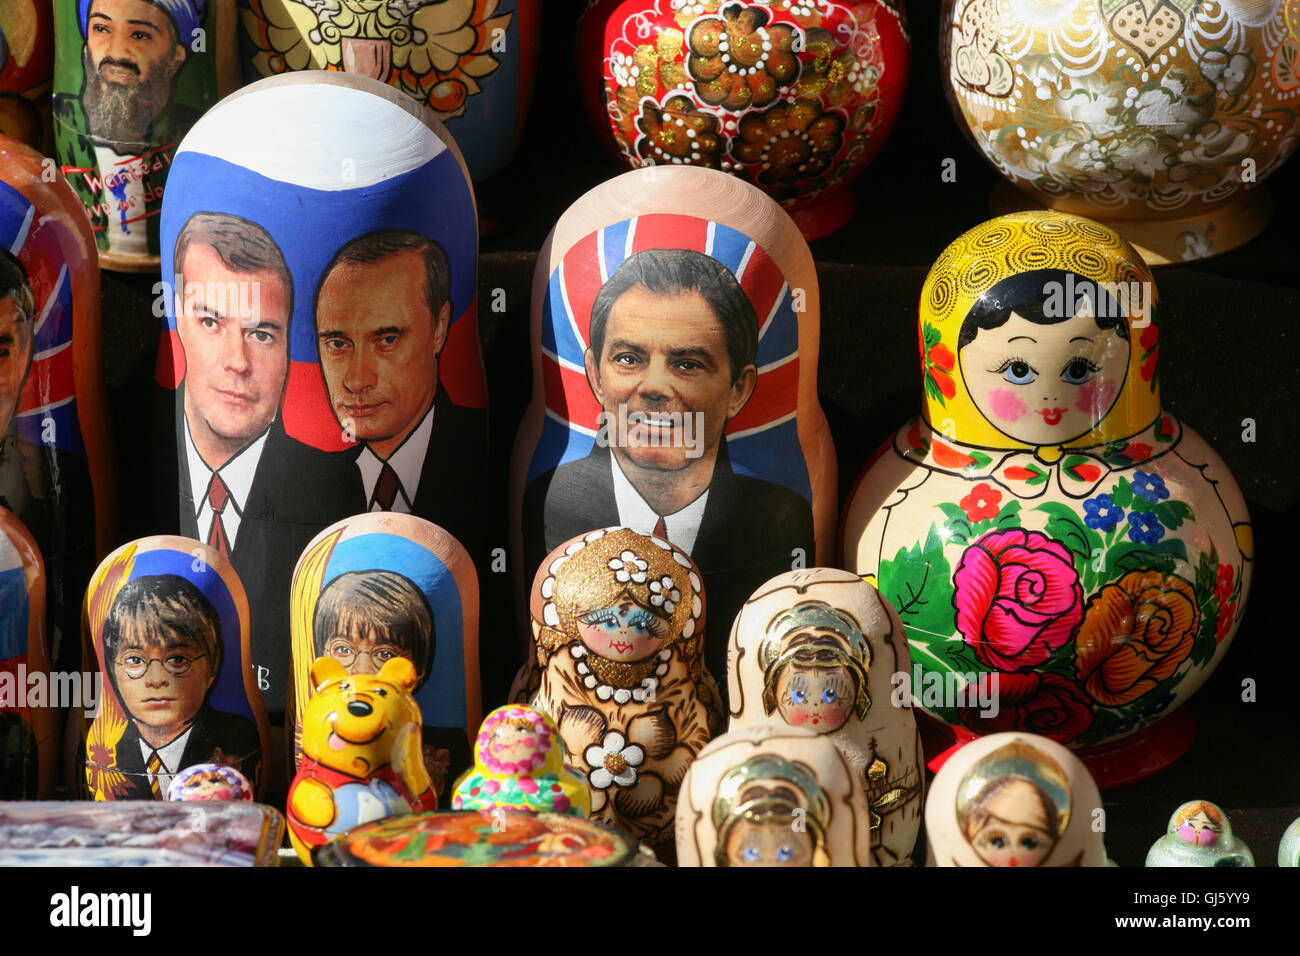 Matryoshka doll /Russian Dolls,with typical motherly images along with dolls of Tony Blair, Medvedev+Putin,Harry - Stock Image